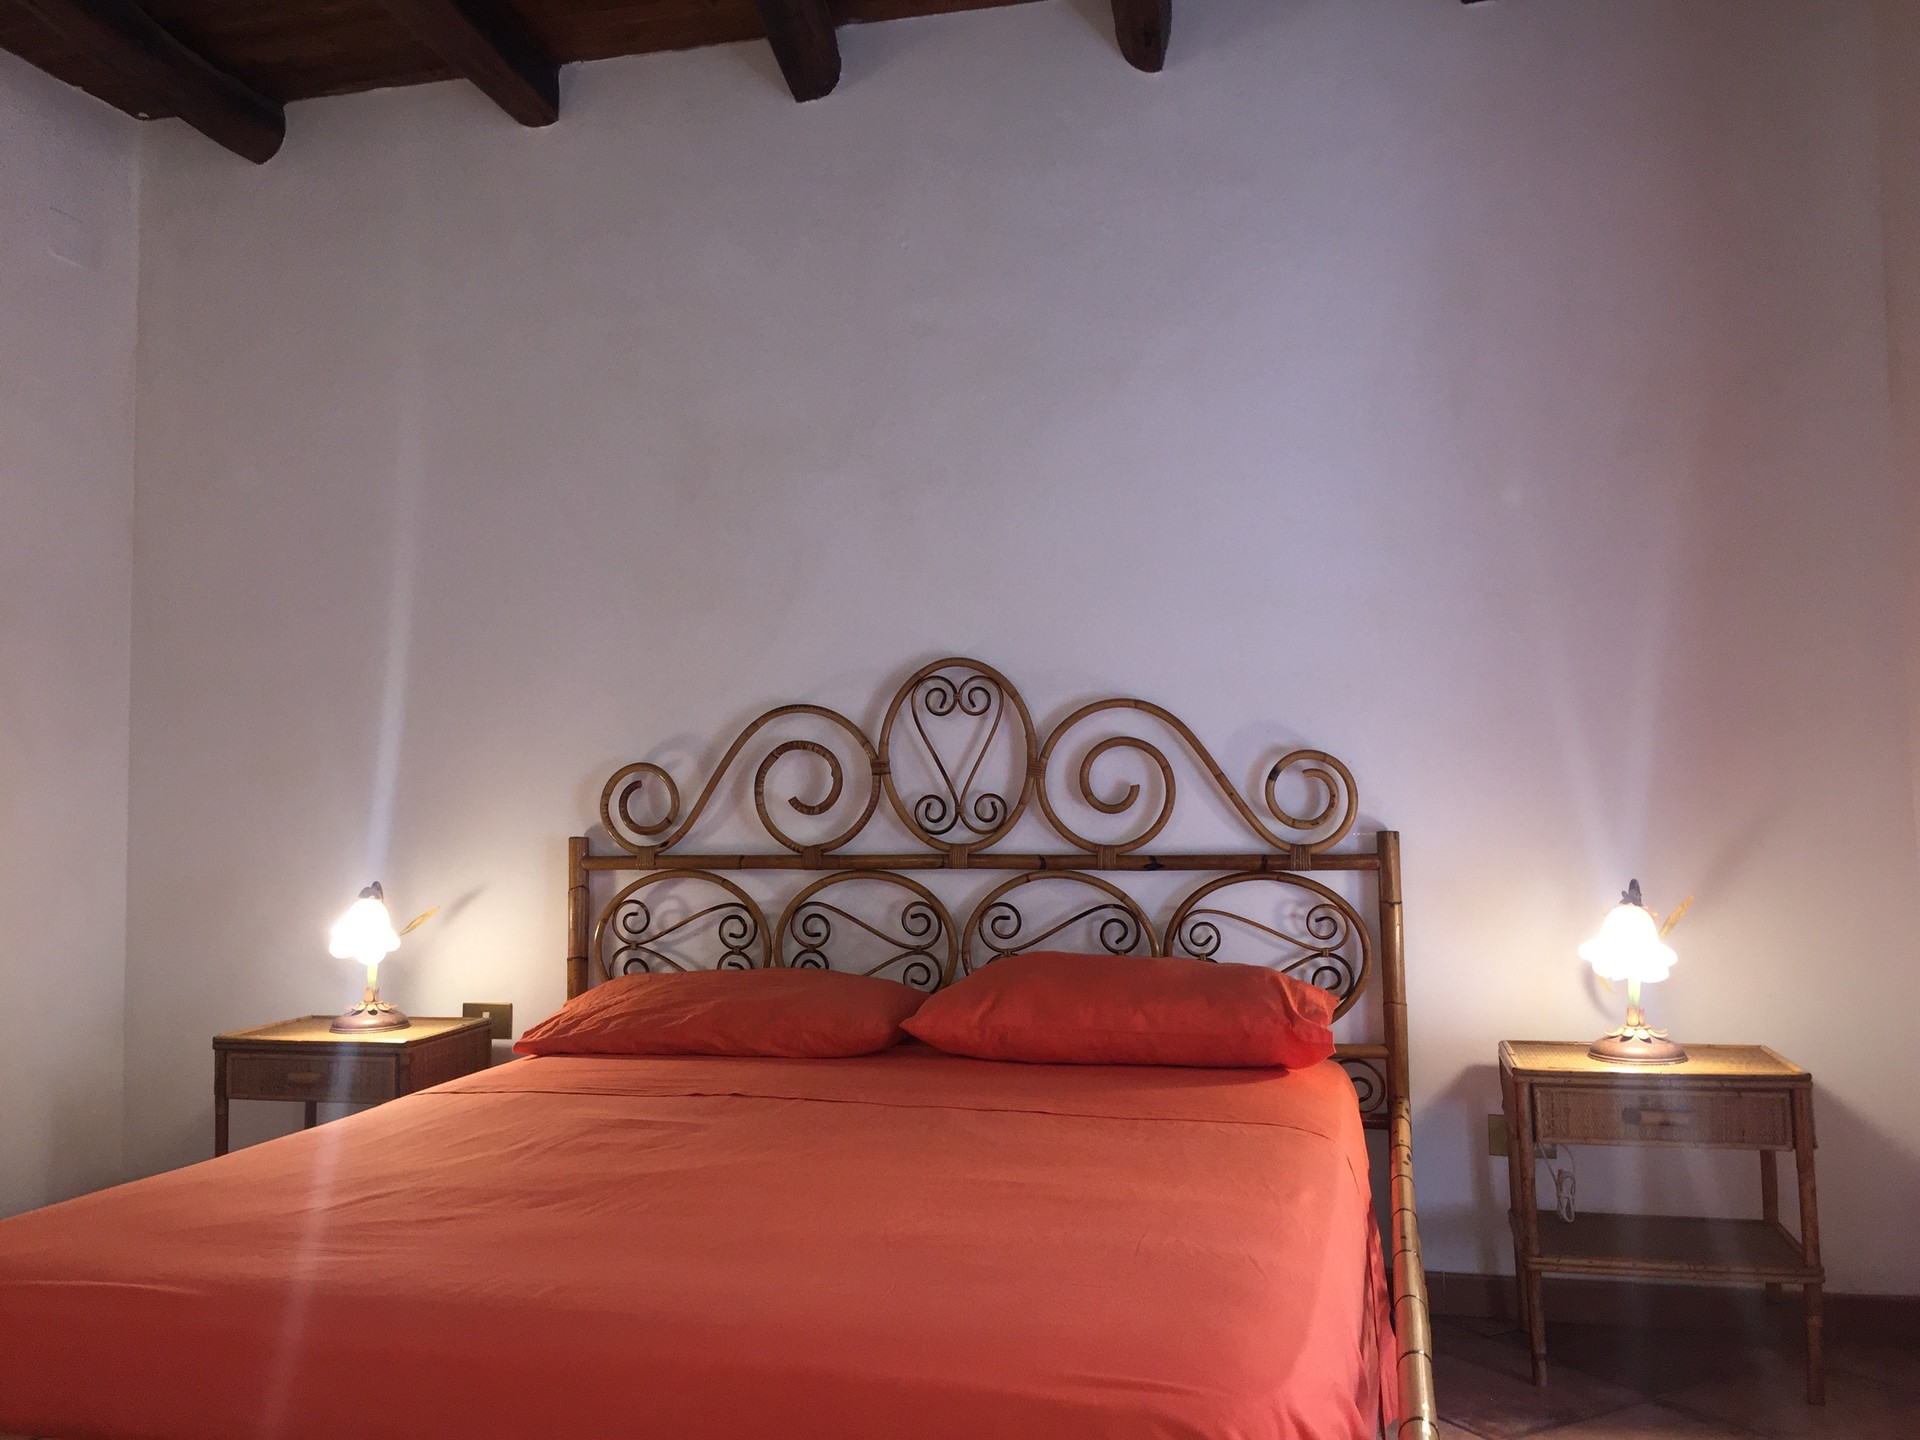 Camere Da Letto Palermo.Letting Out A Gorgeous Private Bedroom For Students In 3 Bedroom